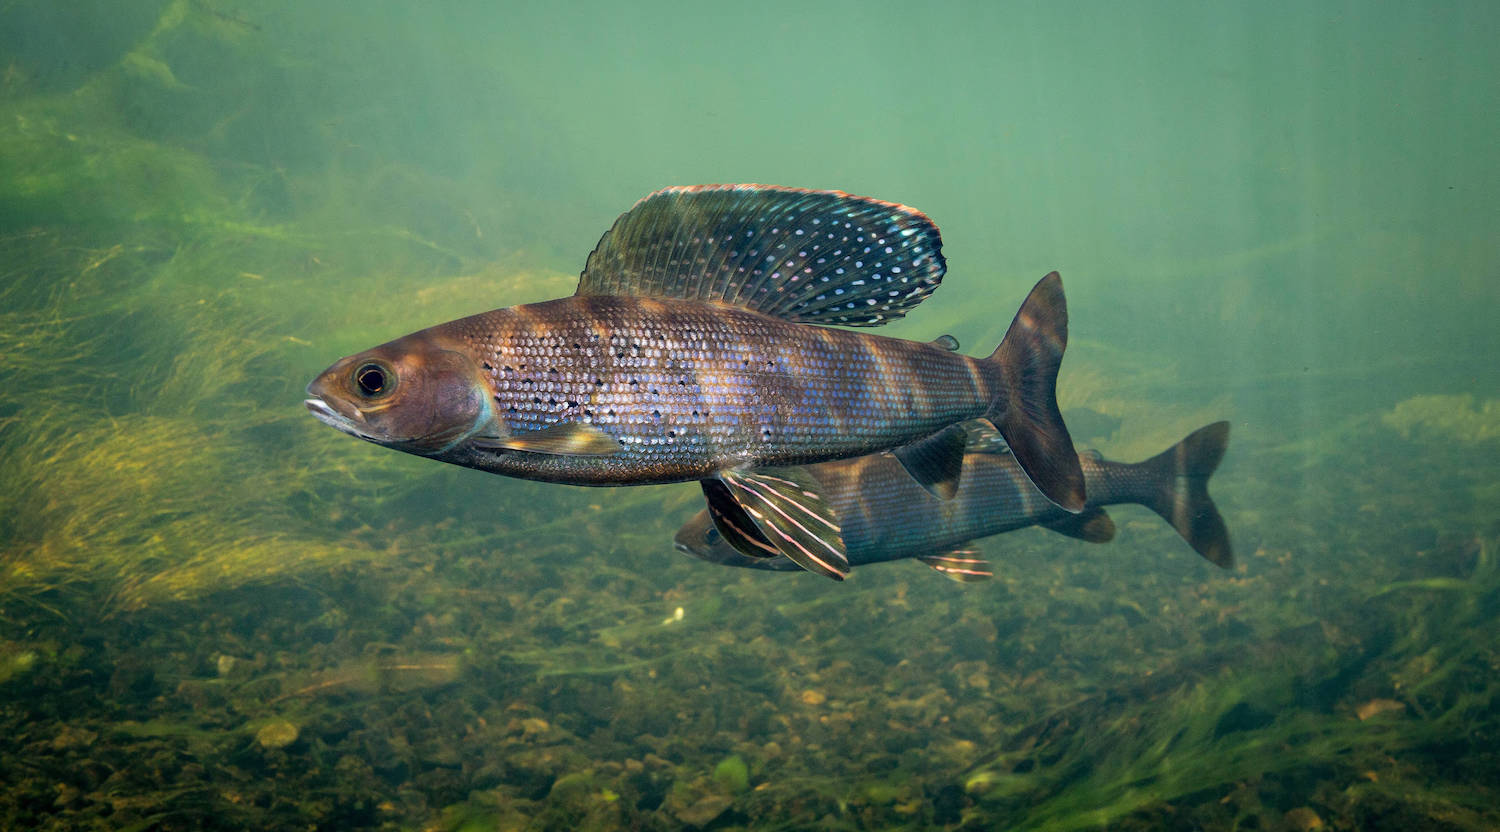 Side view of a grayling